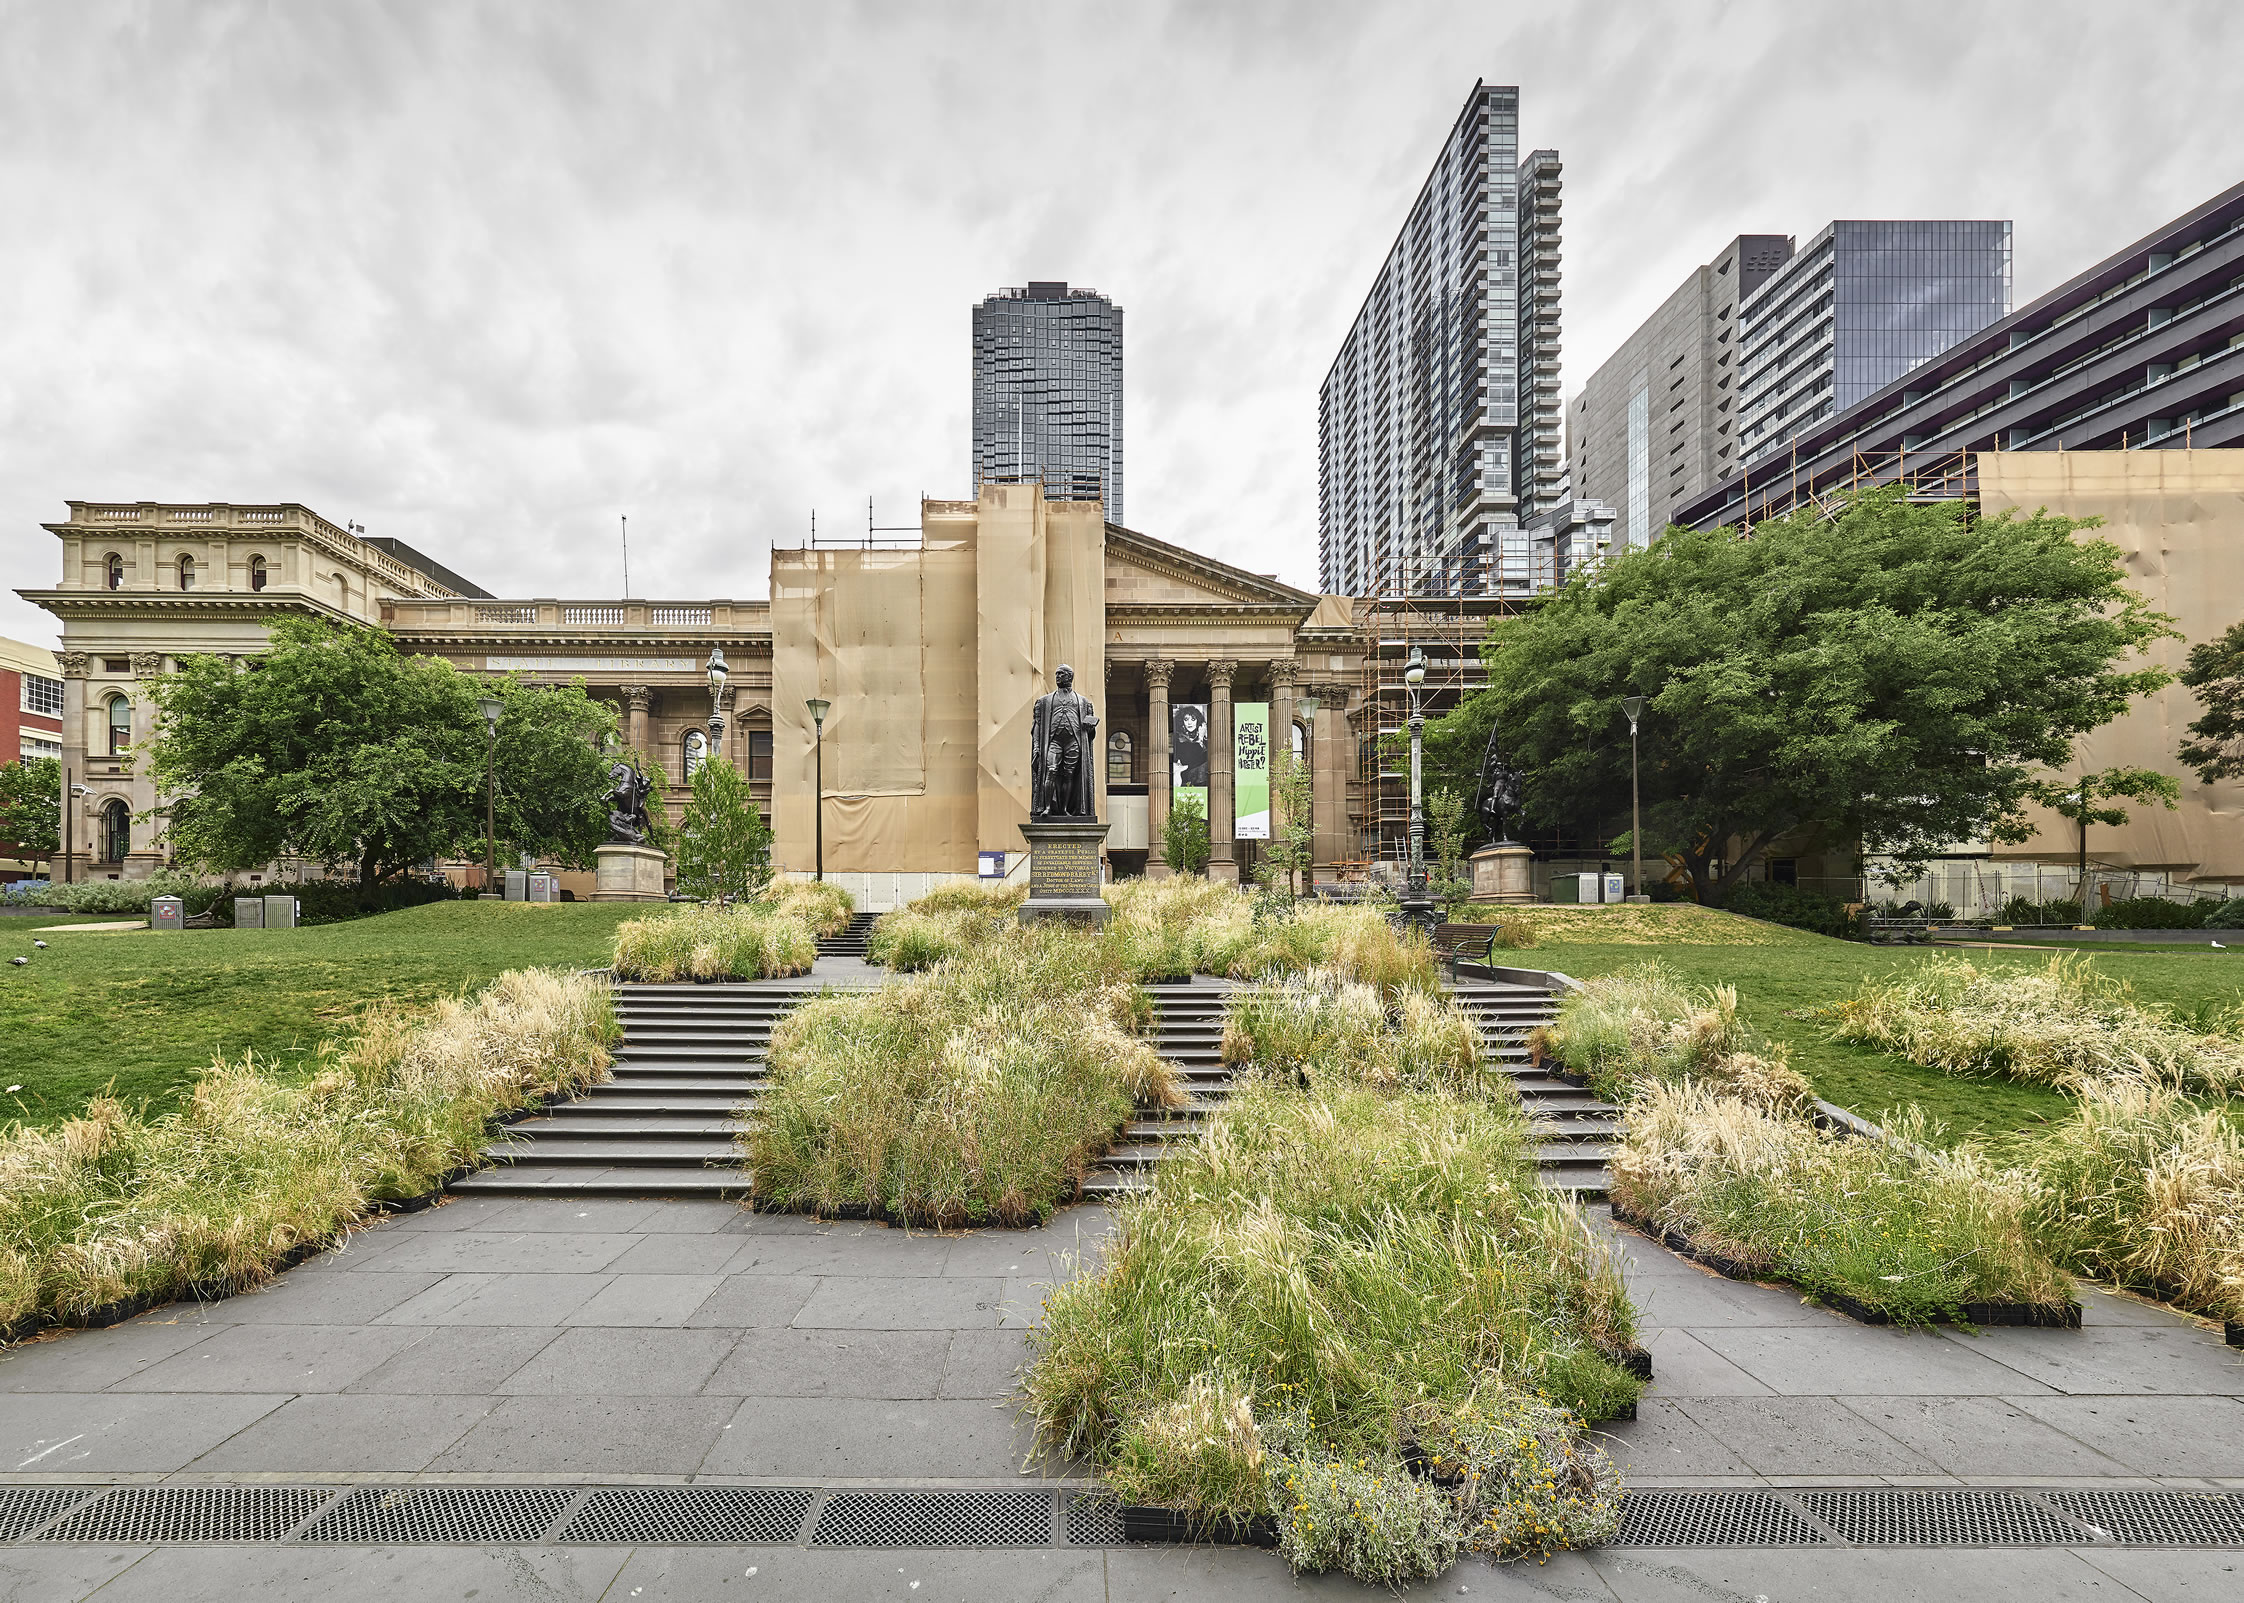 The Grasslands pop up park State Librray of Victoria by Matthew Stanto - Pop-up parks deliver big benefits in small spaces